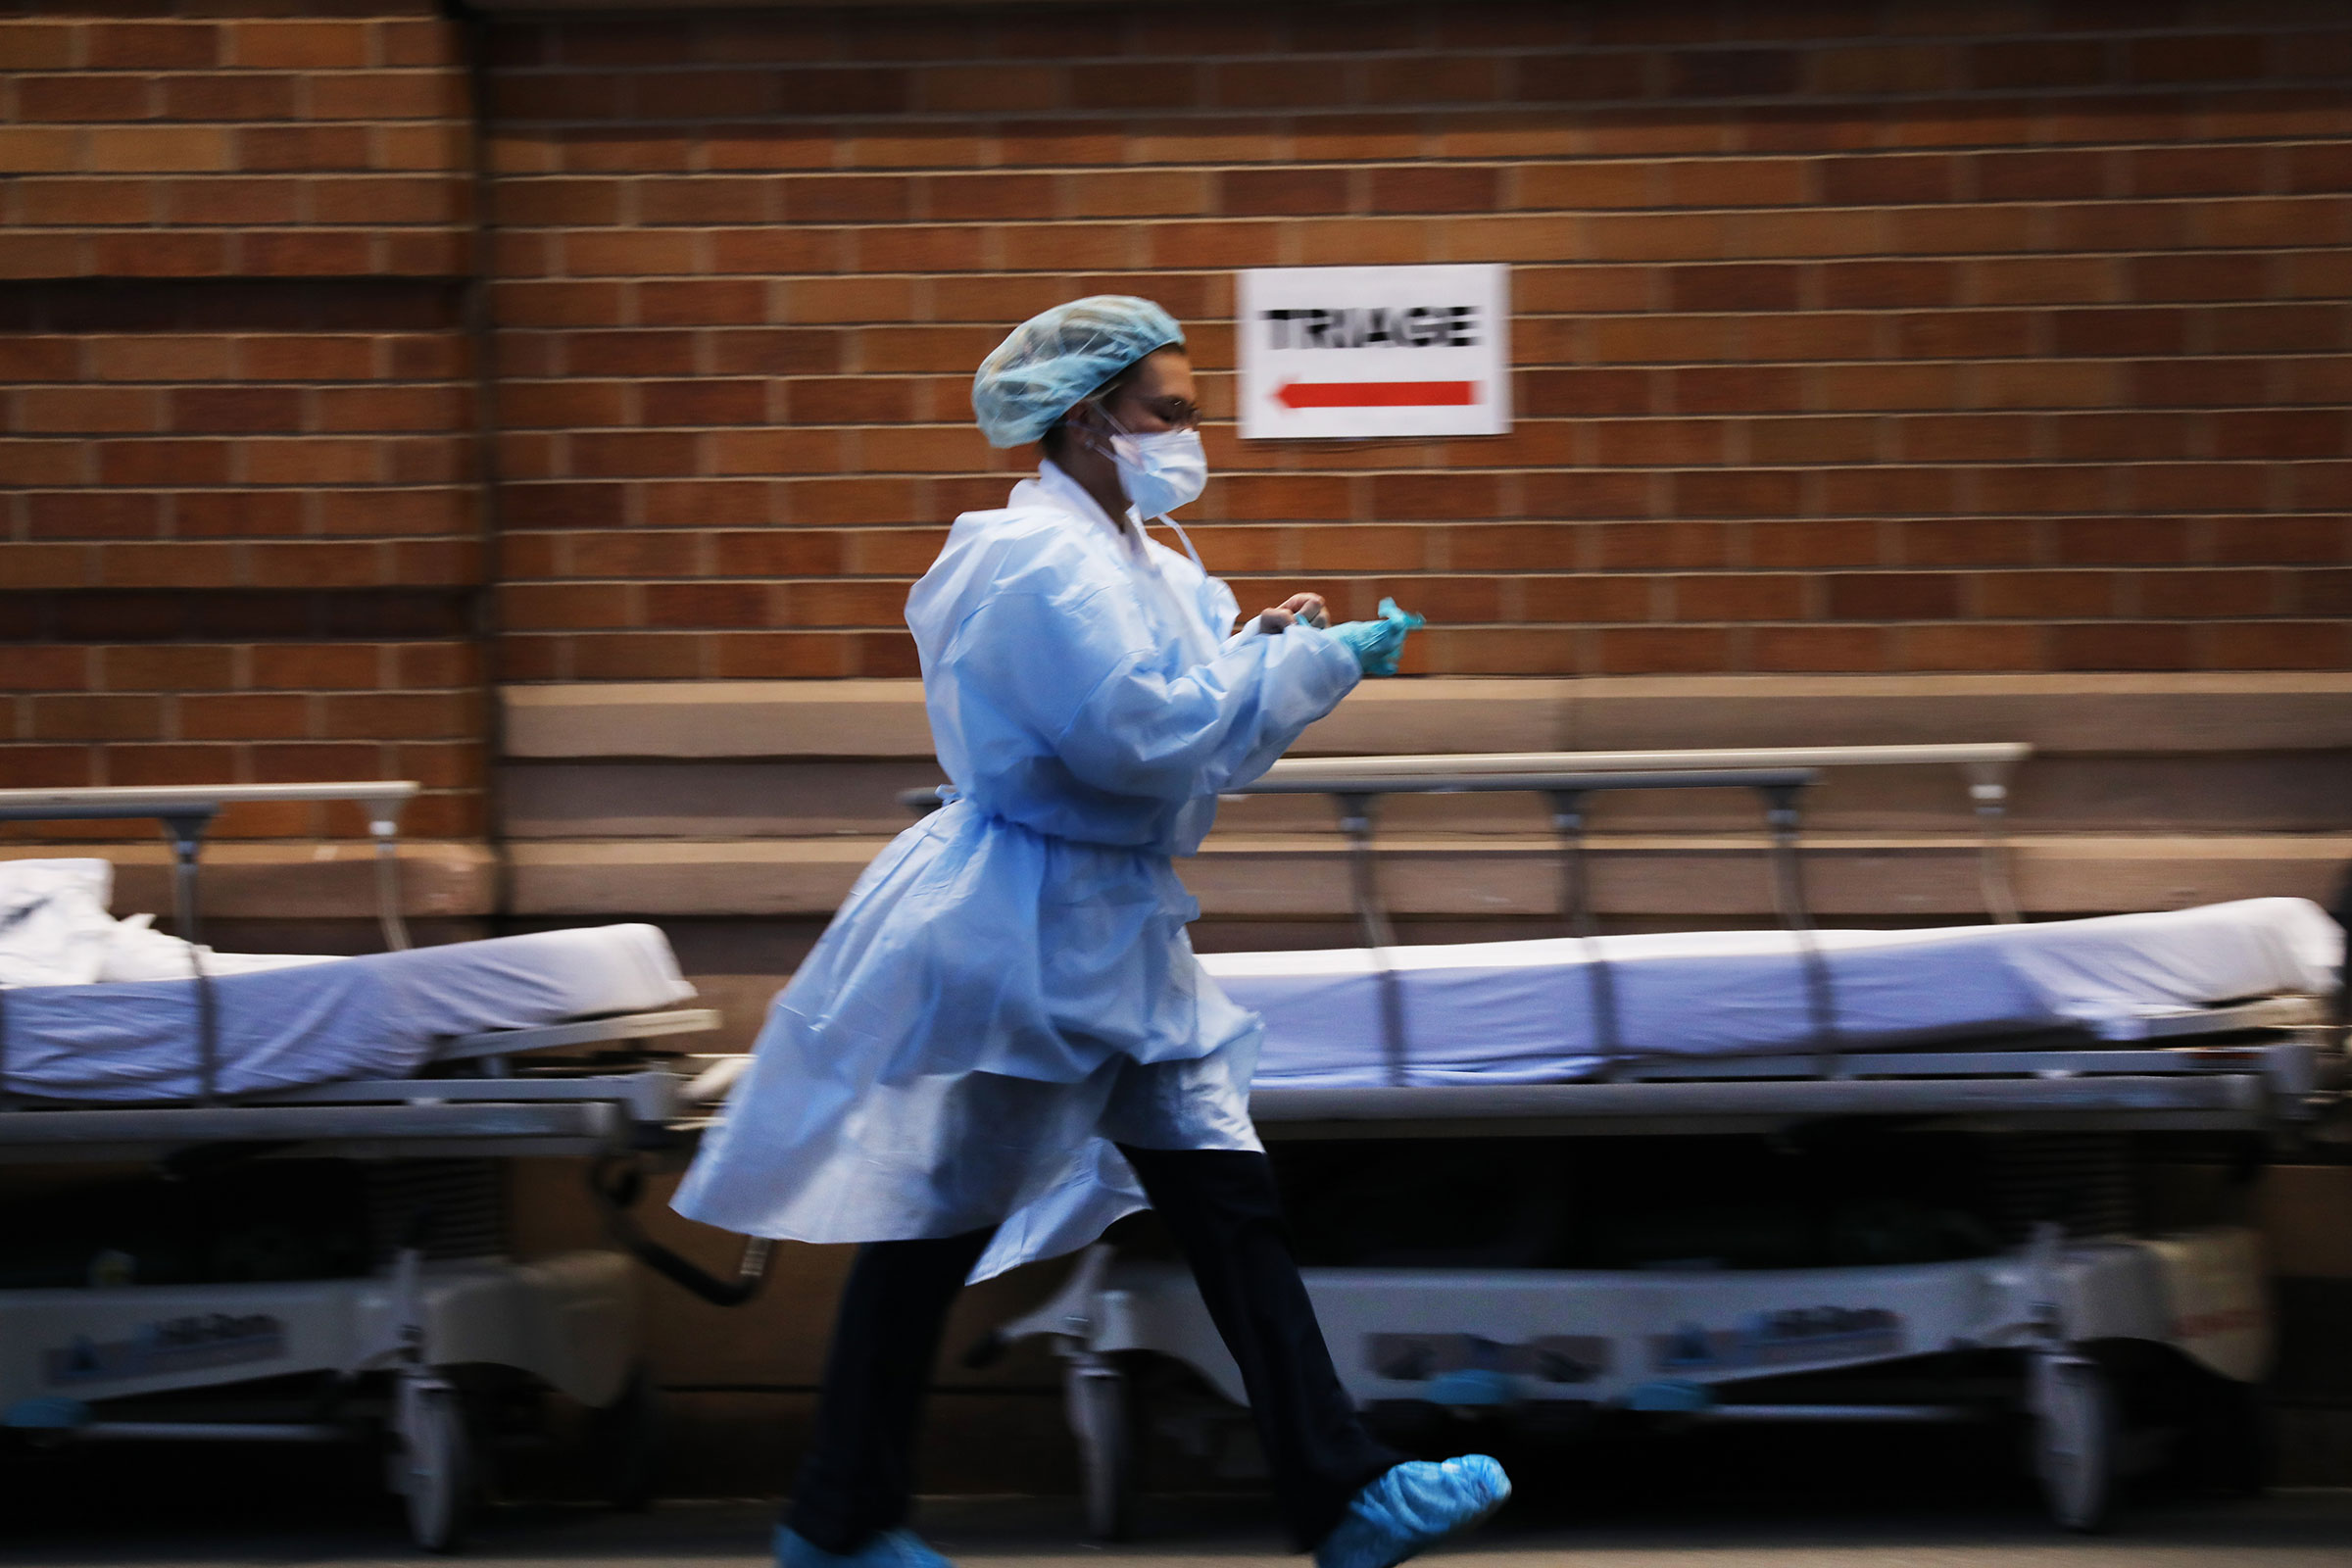 Medical workers wait for patients at a special coronavirus intake area at Maimonides Medical Center in the Borough Park section of Brooklyn which has seen an upsurge of coronavirus patients on April 02, 2020 in New York City.